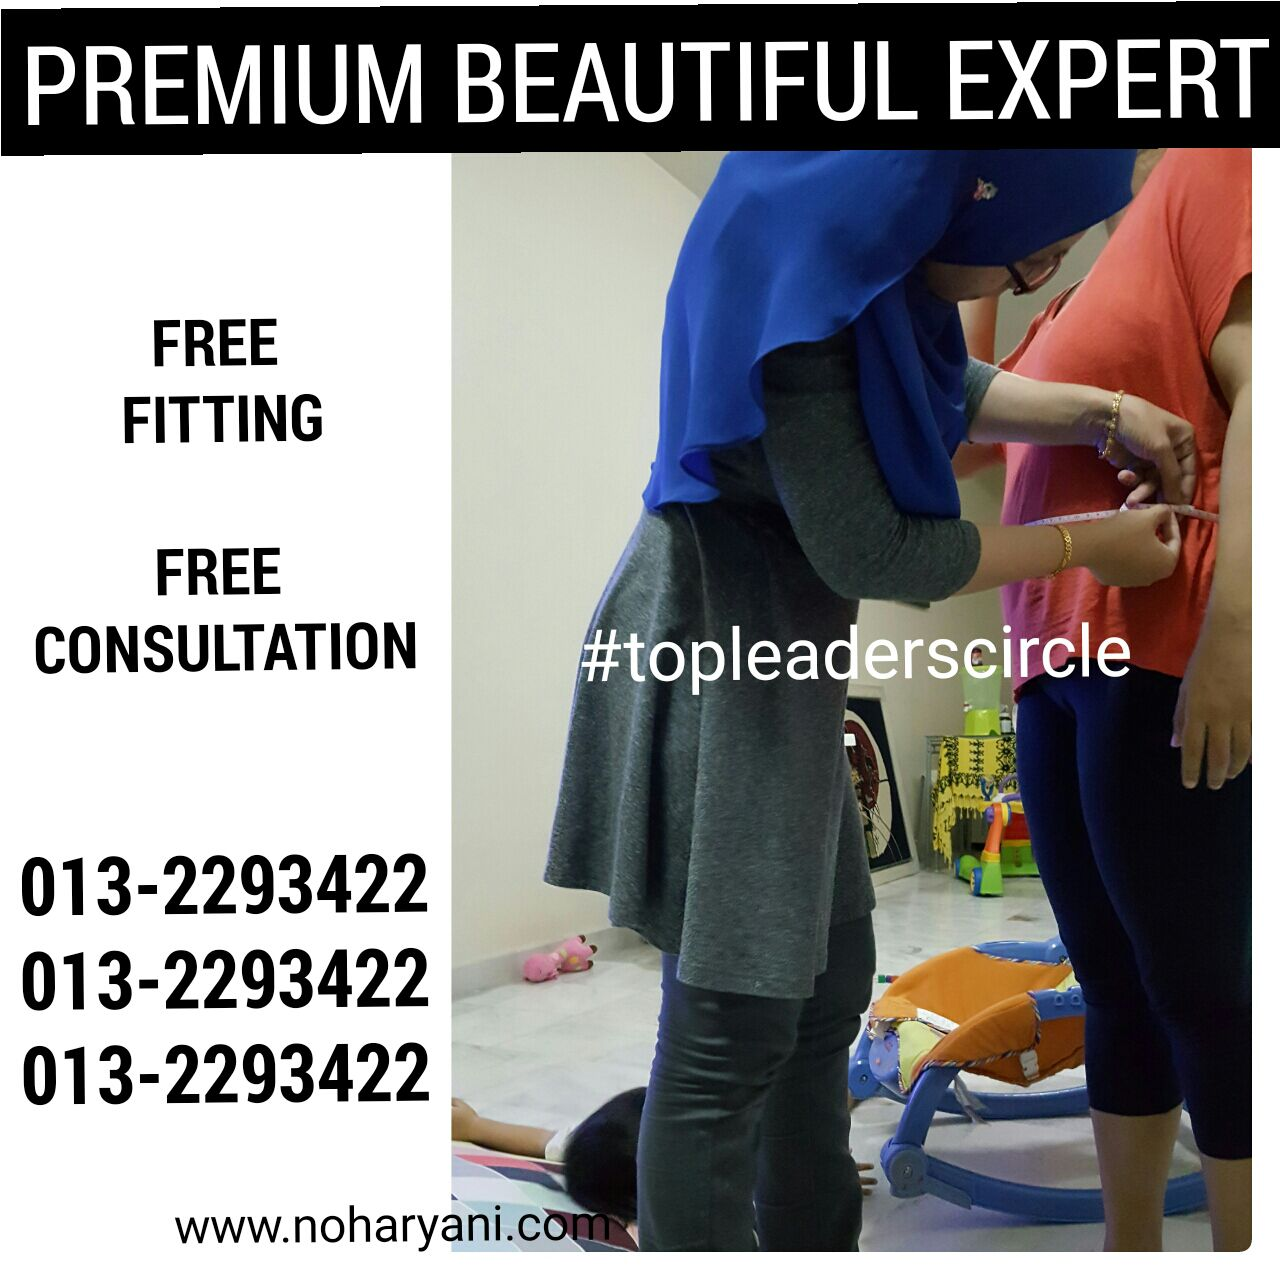 Premium Beautiful Expert ke Sunway Damansara